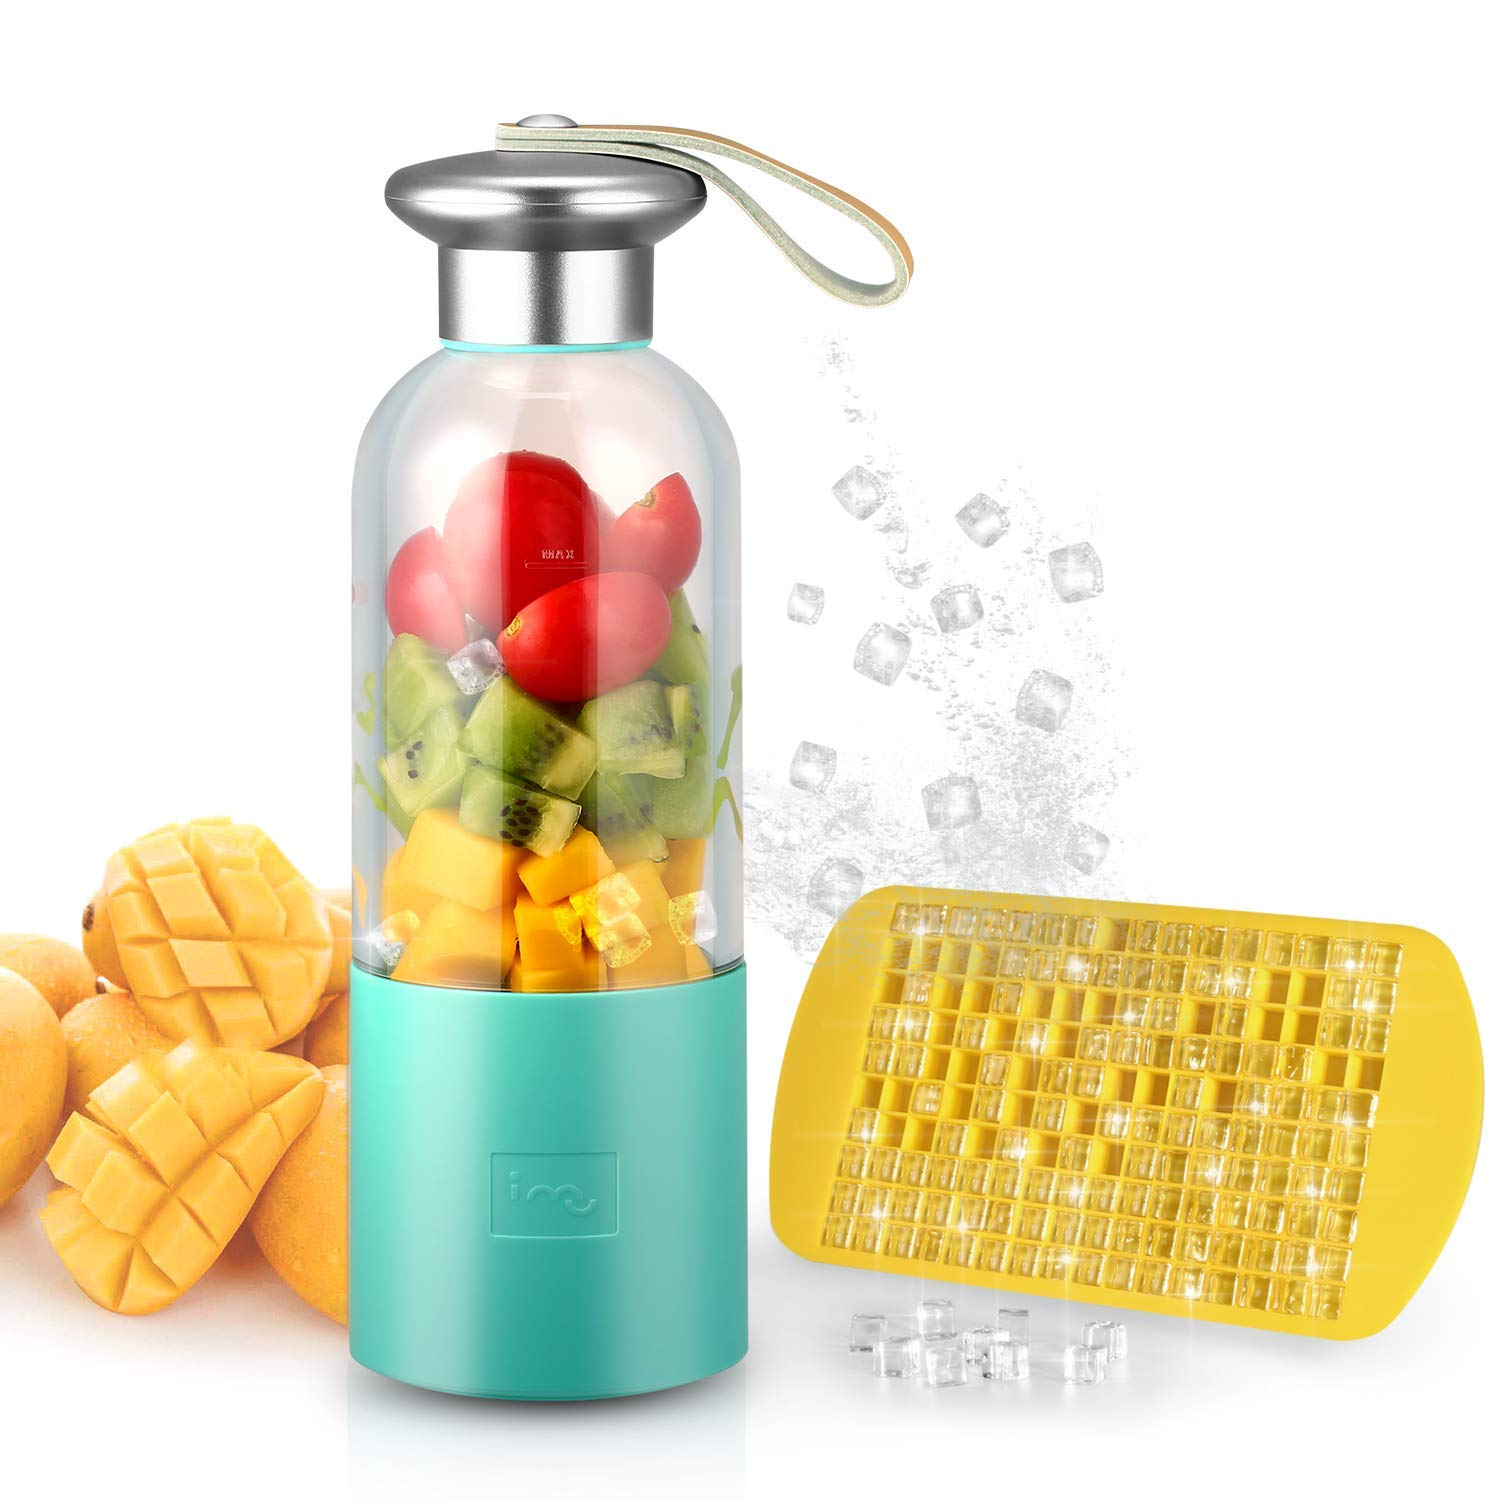 Hot Sale Portable Smoothie Blender Small Blender Usb Rechargeable Single Served For Shakes And Smoothies, Fruit Mixer Machine Hot Sale Portable Smoothie Blender Small Blender Usb Rechargeable Single Served For Shakes And Smoothies, Fruit Mixer Machine